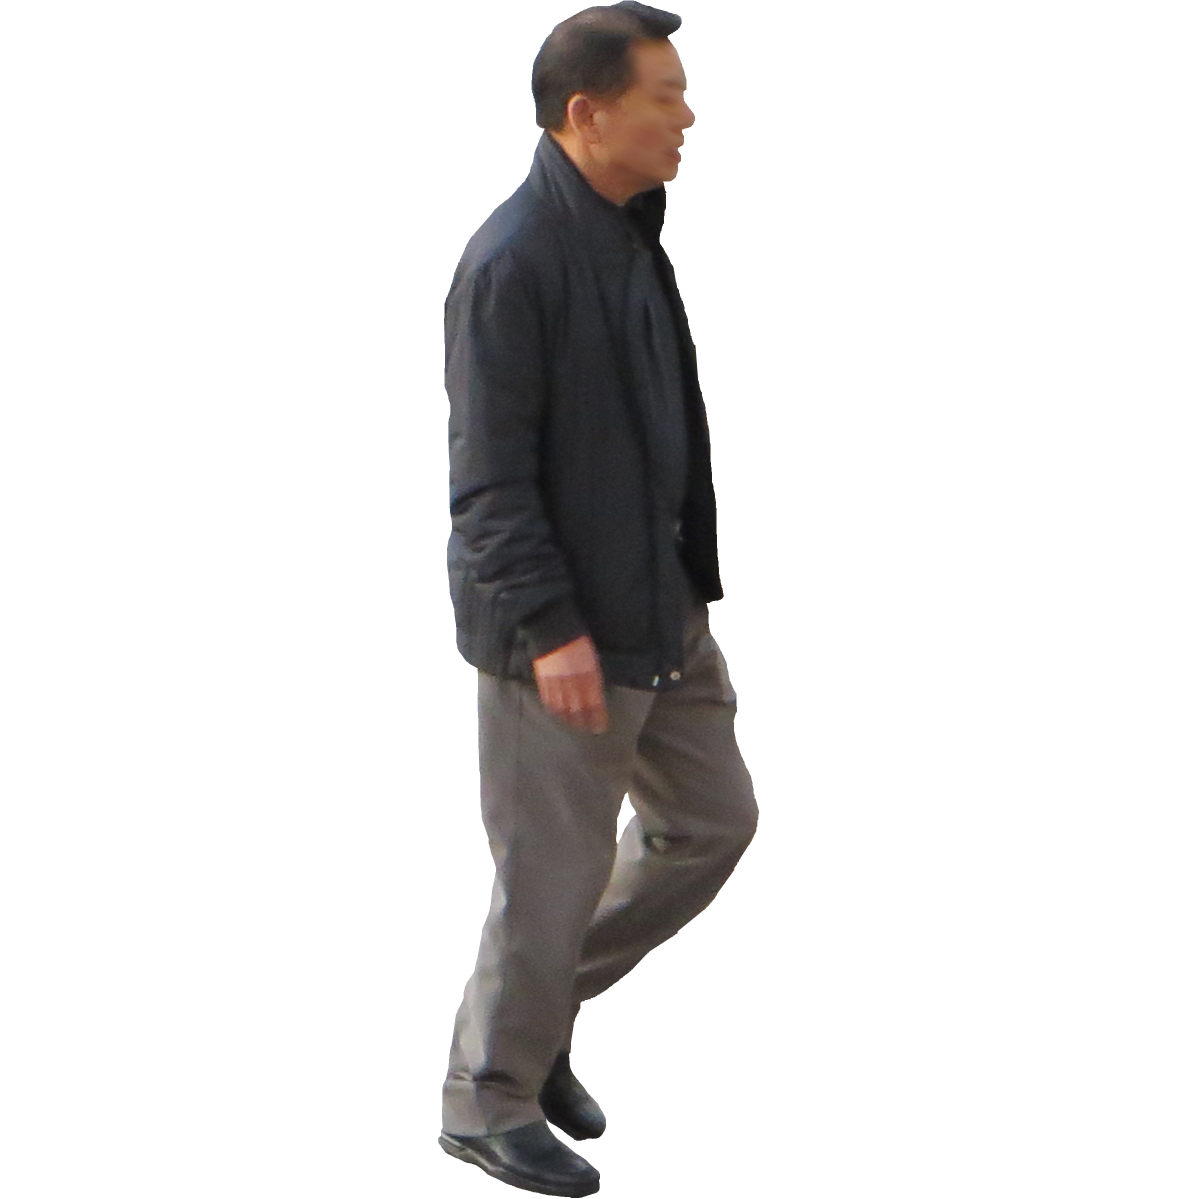 Person walking side view png. Images in collection page